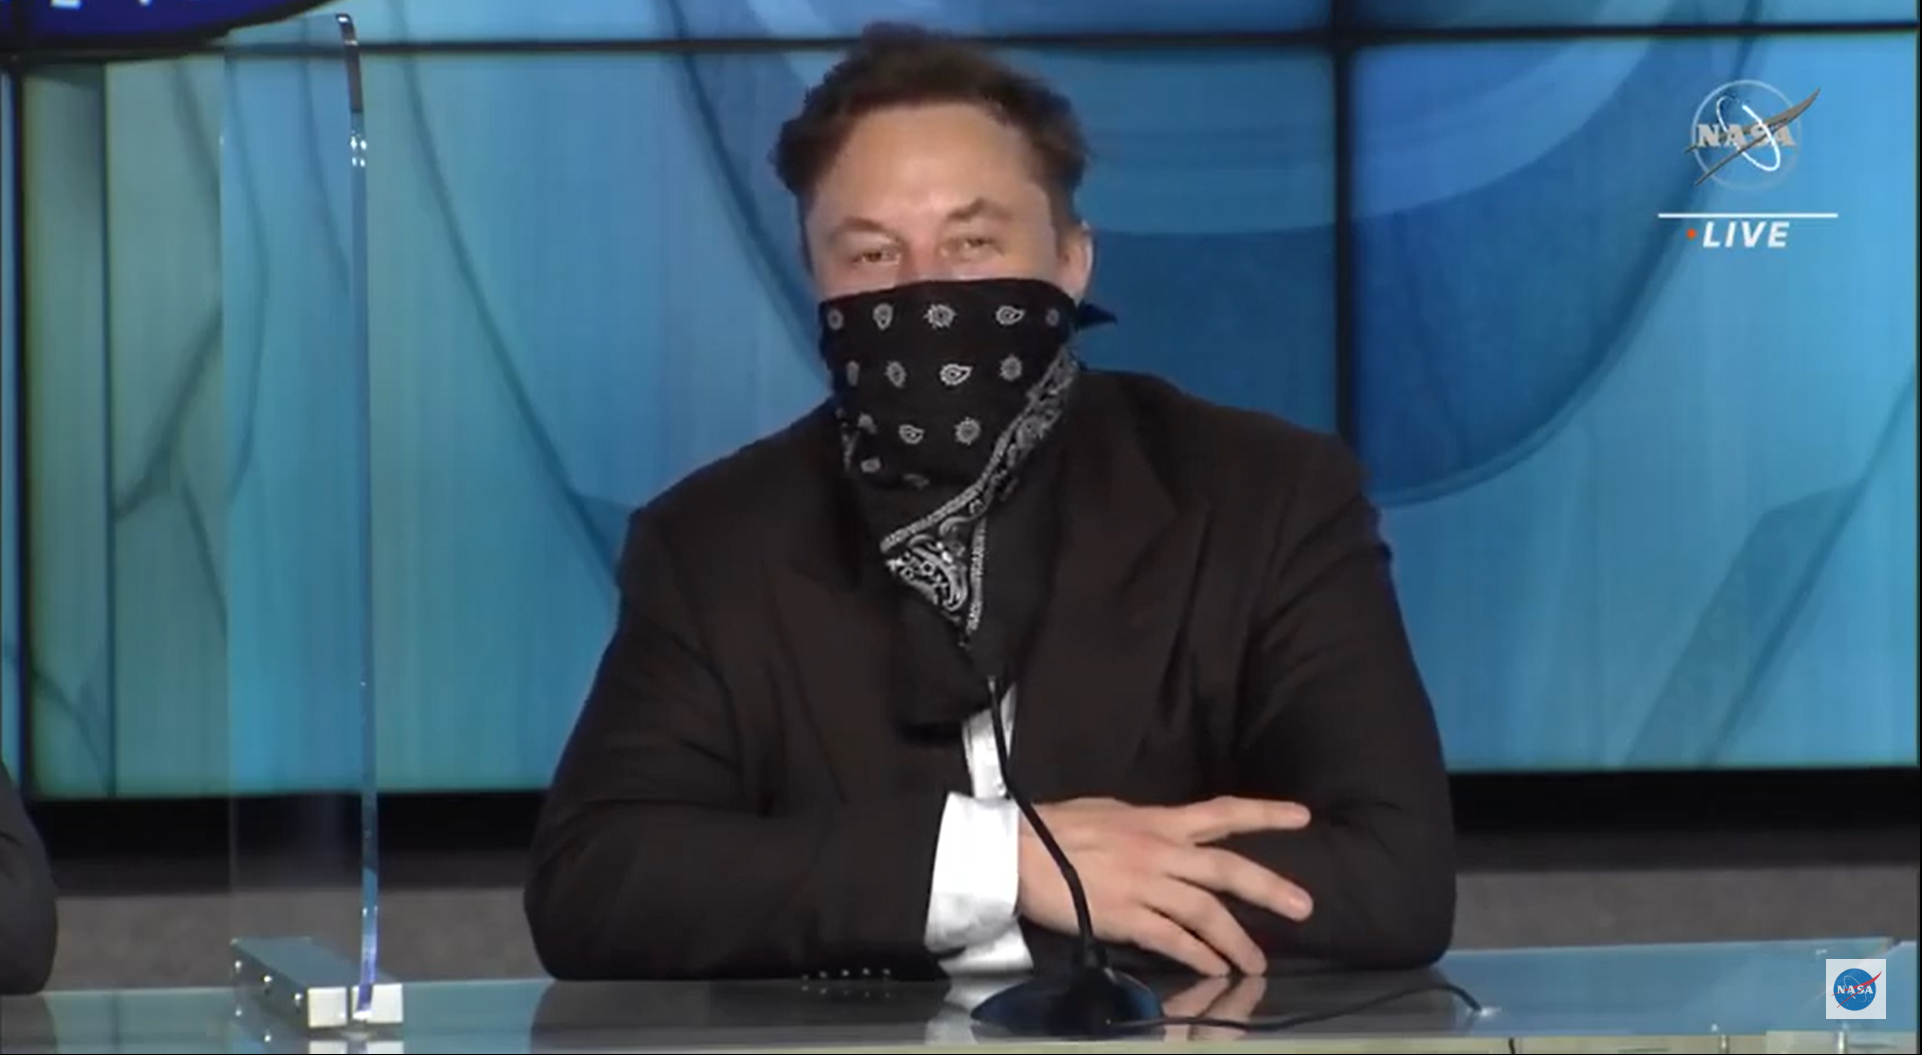 SpaceX founder Elon Musk answered questions during a news conference held on April 23, 2021.